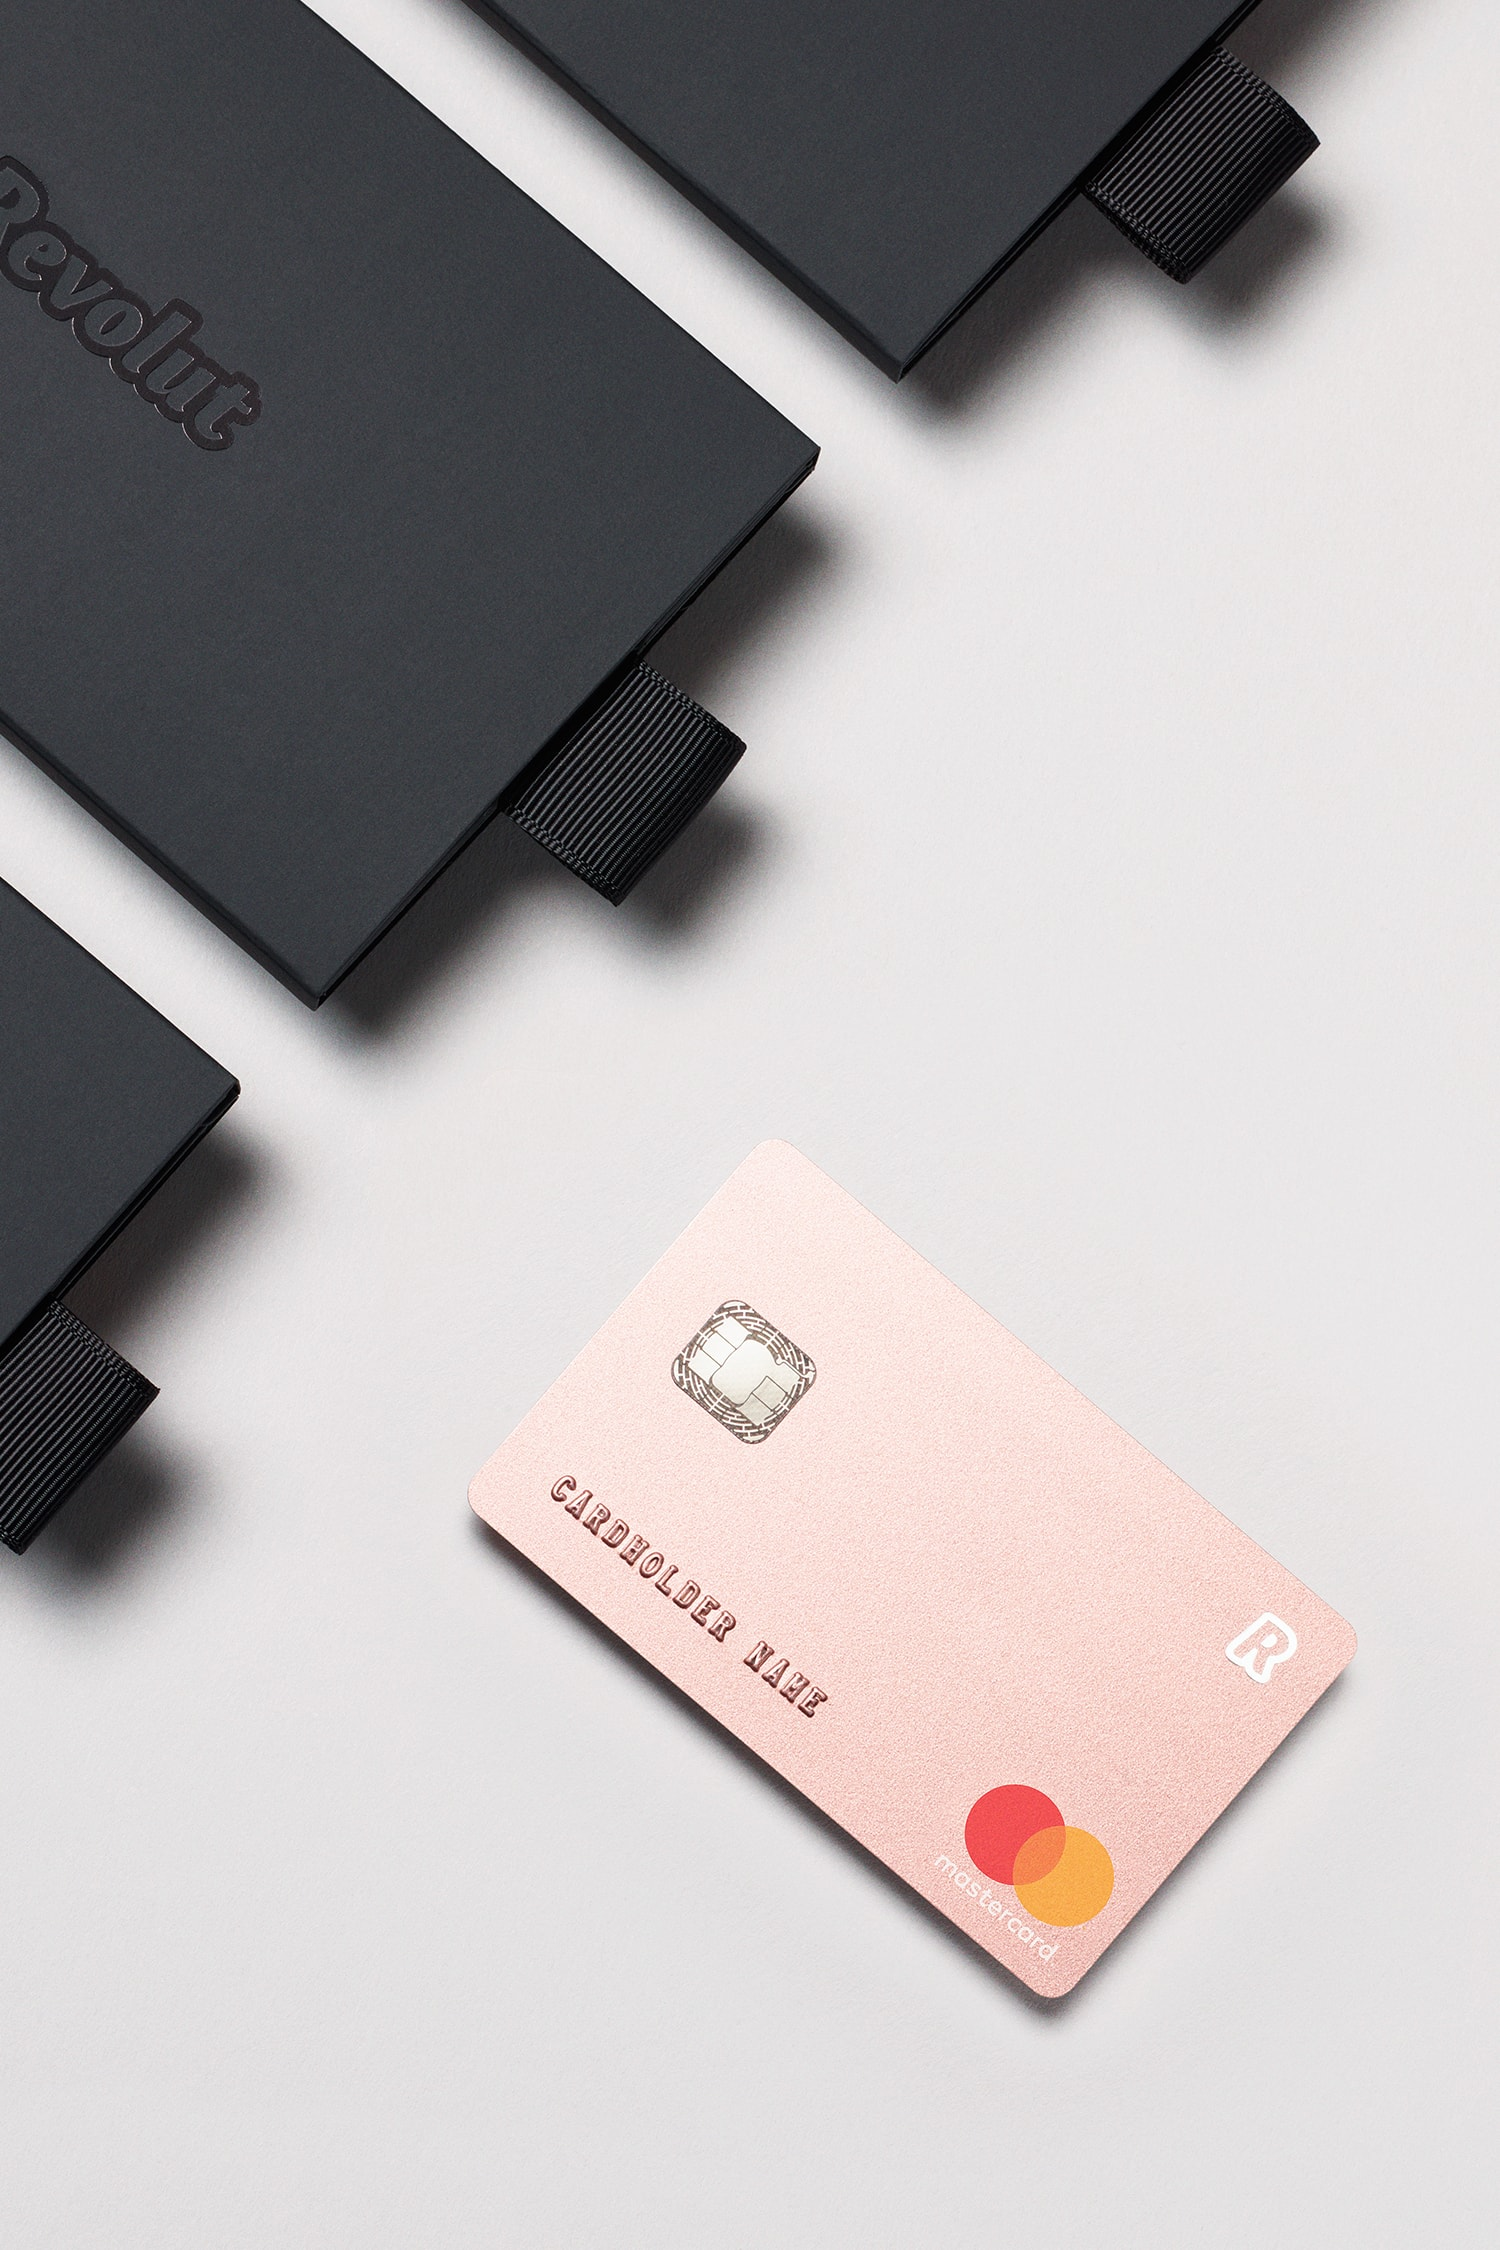 Perspective view of the Revolut Premium bank card in metallic pink beside black packaging.